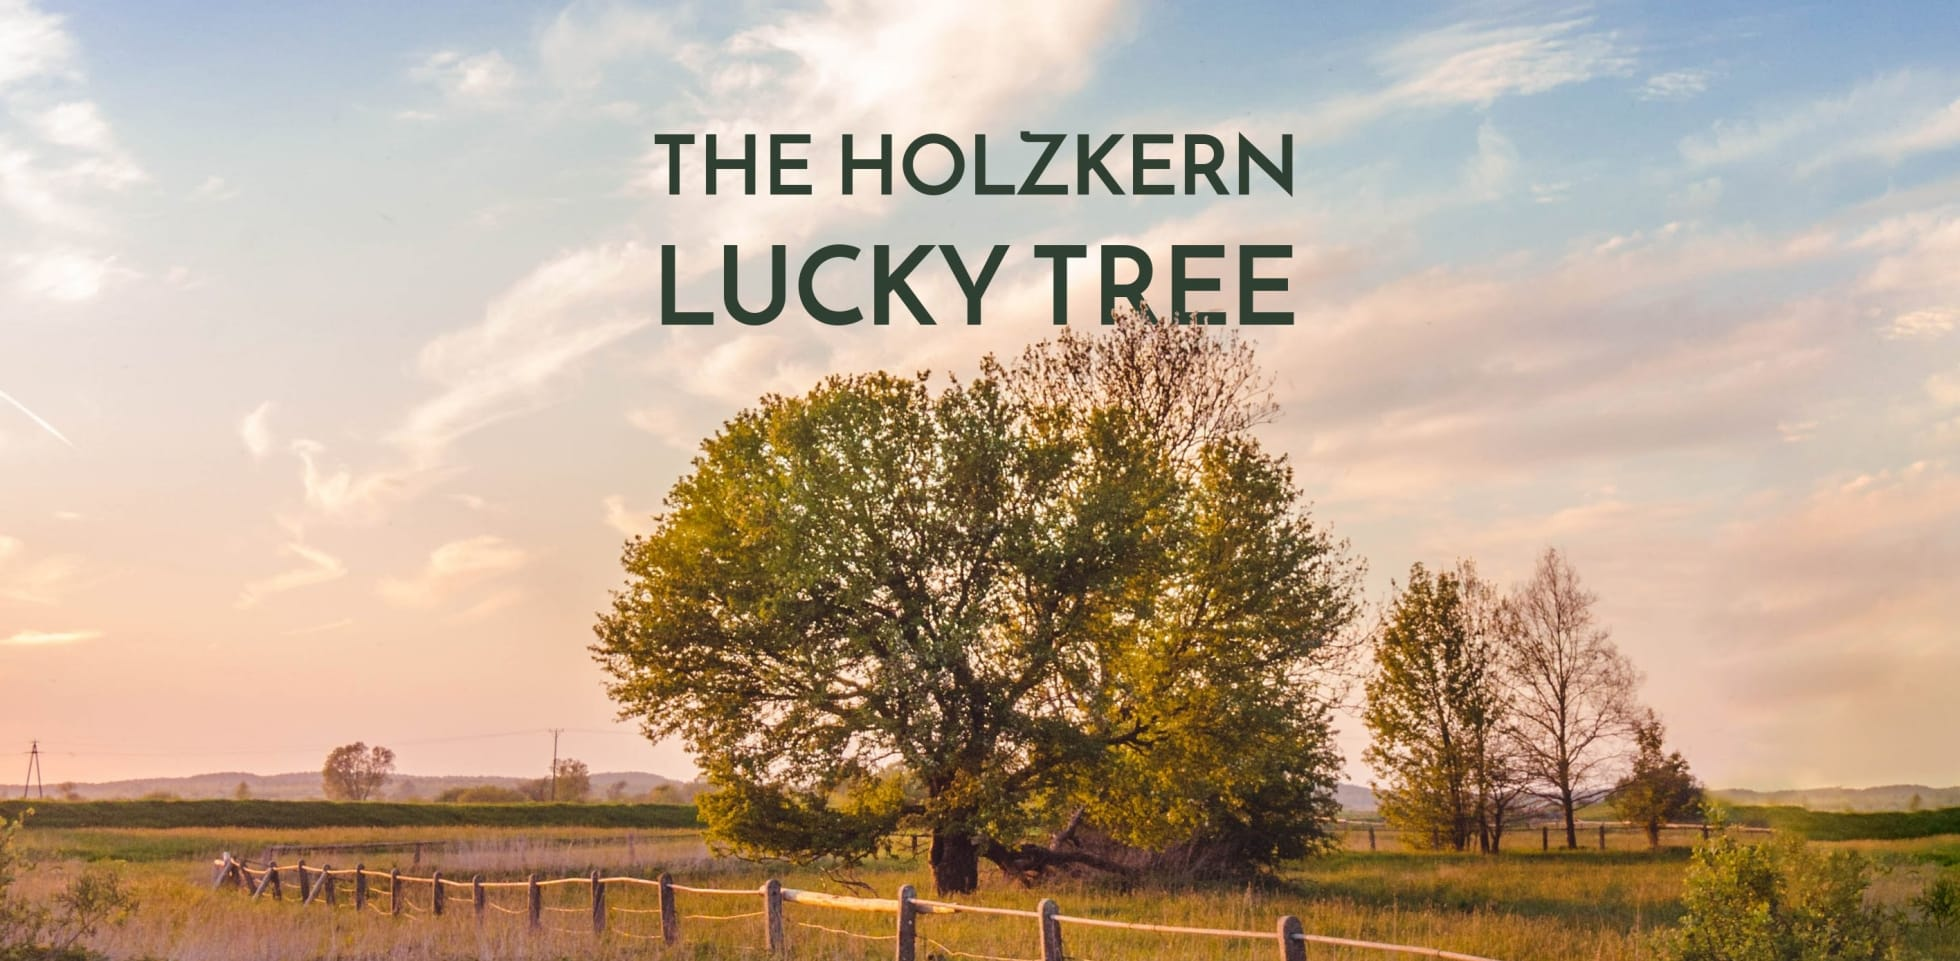 The Holzkern Lucky Tree is flowering again